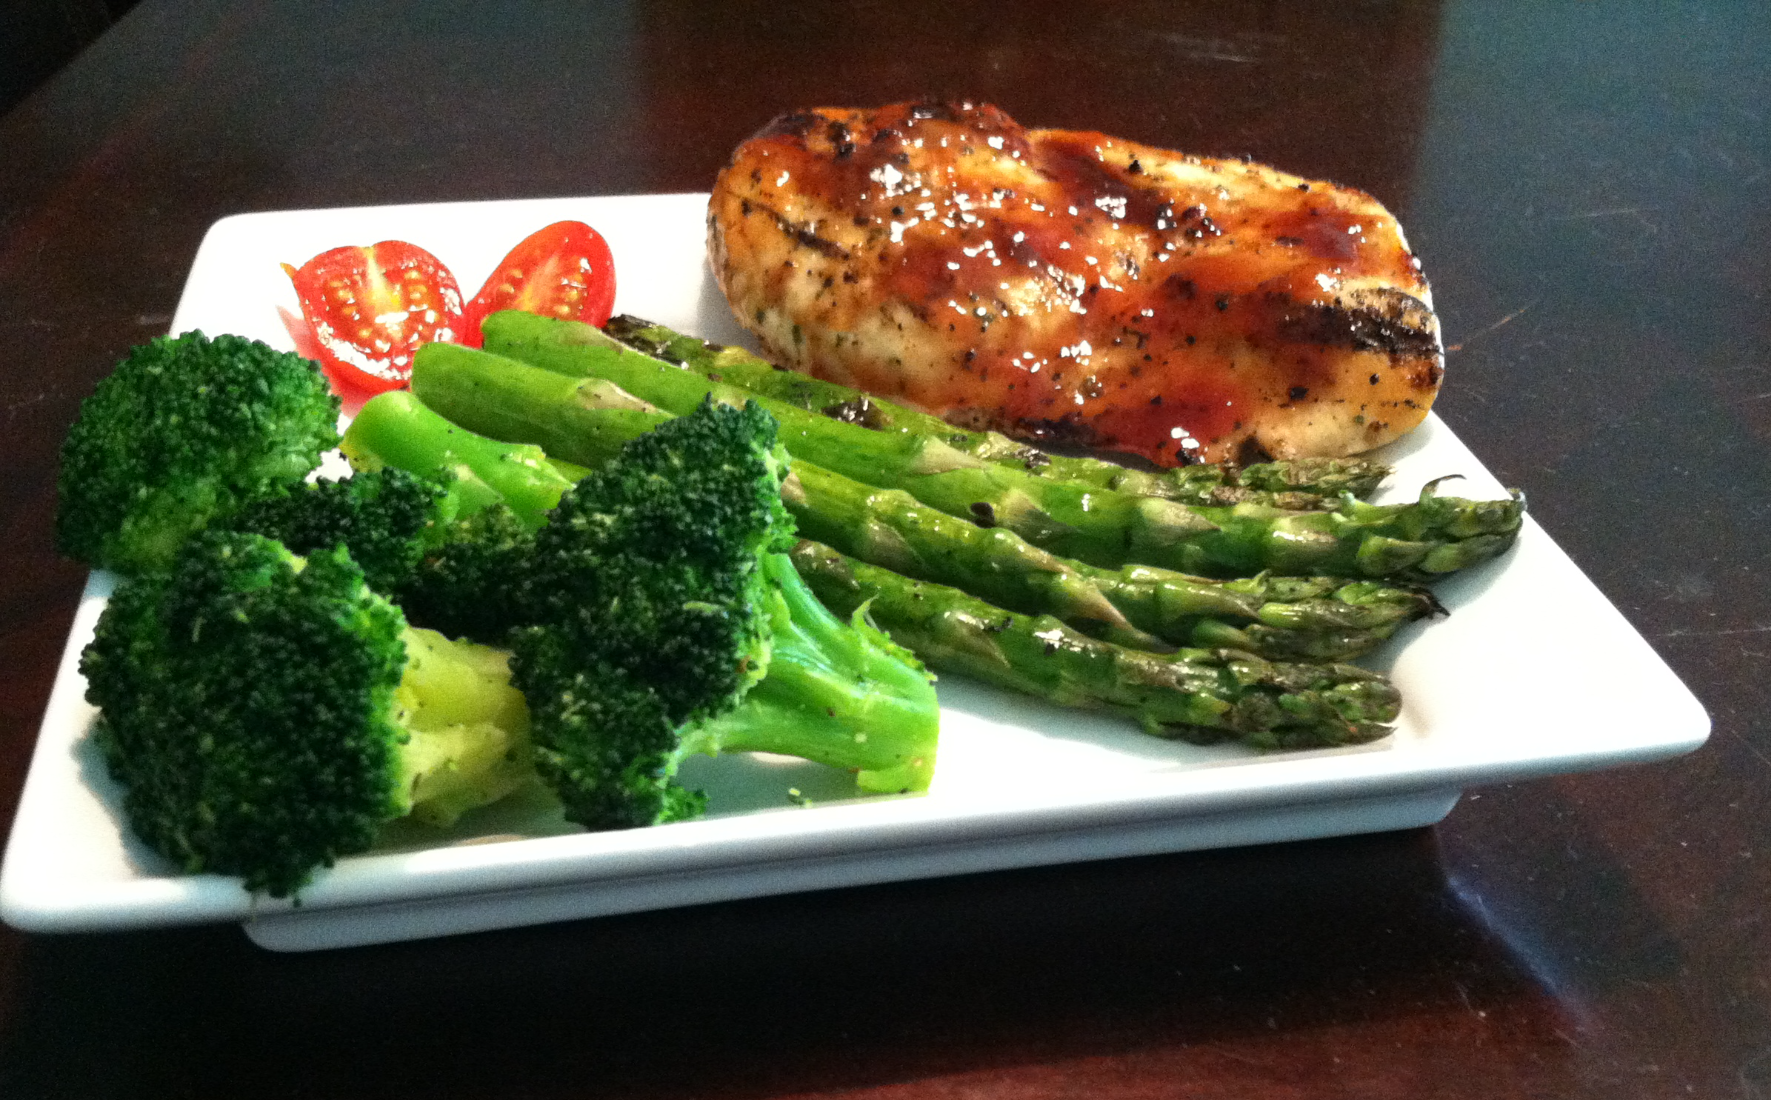 Barbecue Glazed Chicken Breast